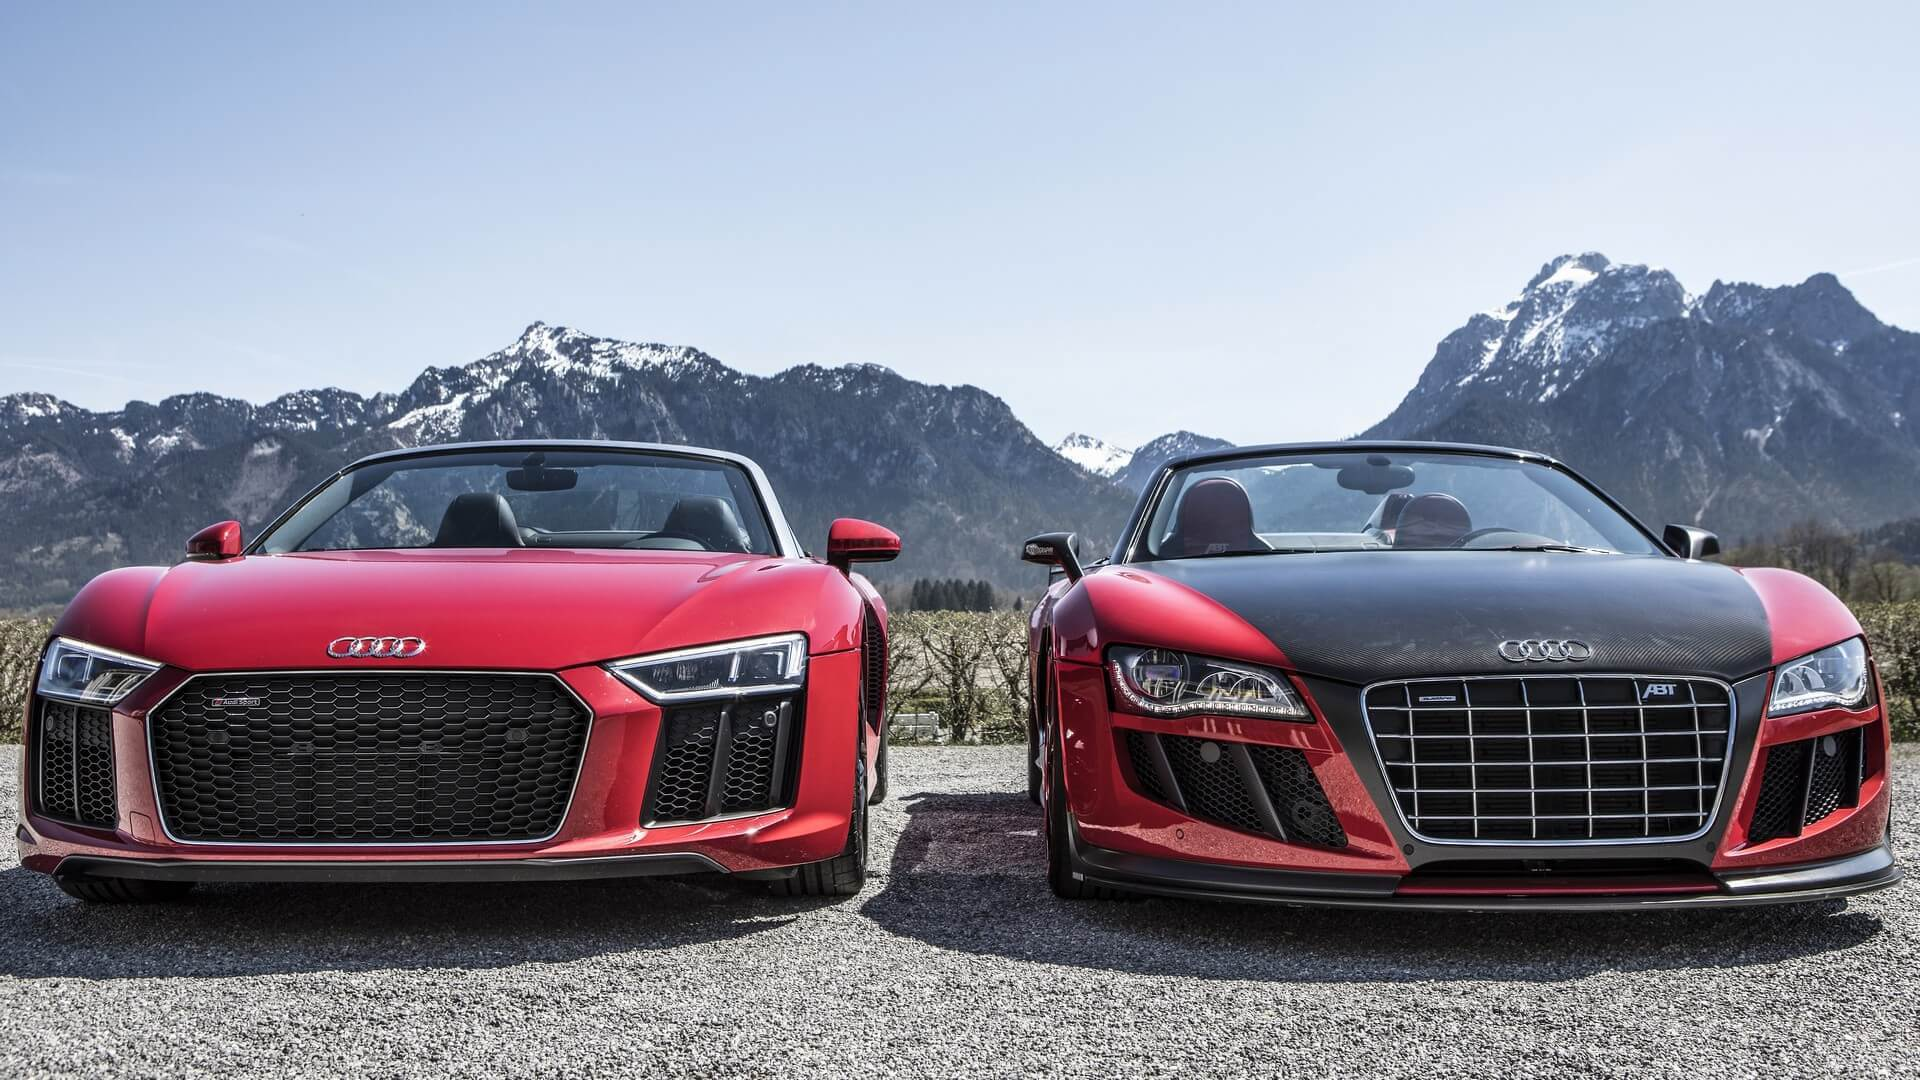 Spyder Invasion In The Alps Audi R RWS Meets The R GT S By ABT - 2018 audi r8 gt